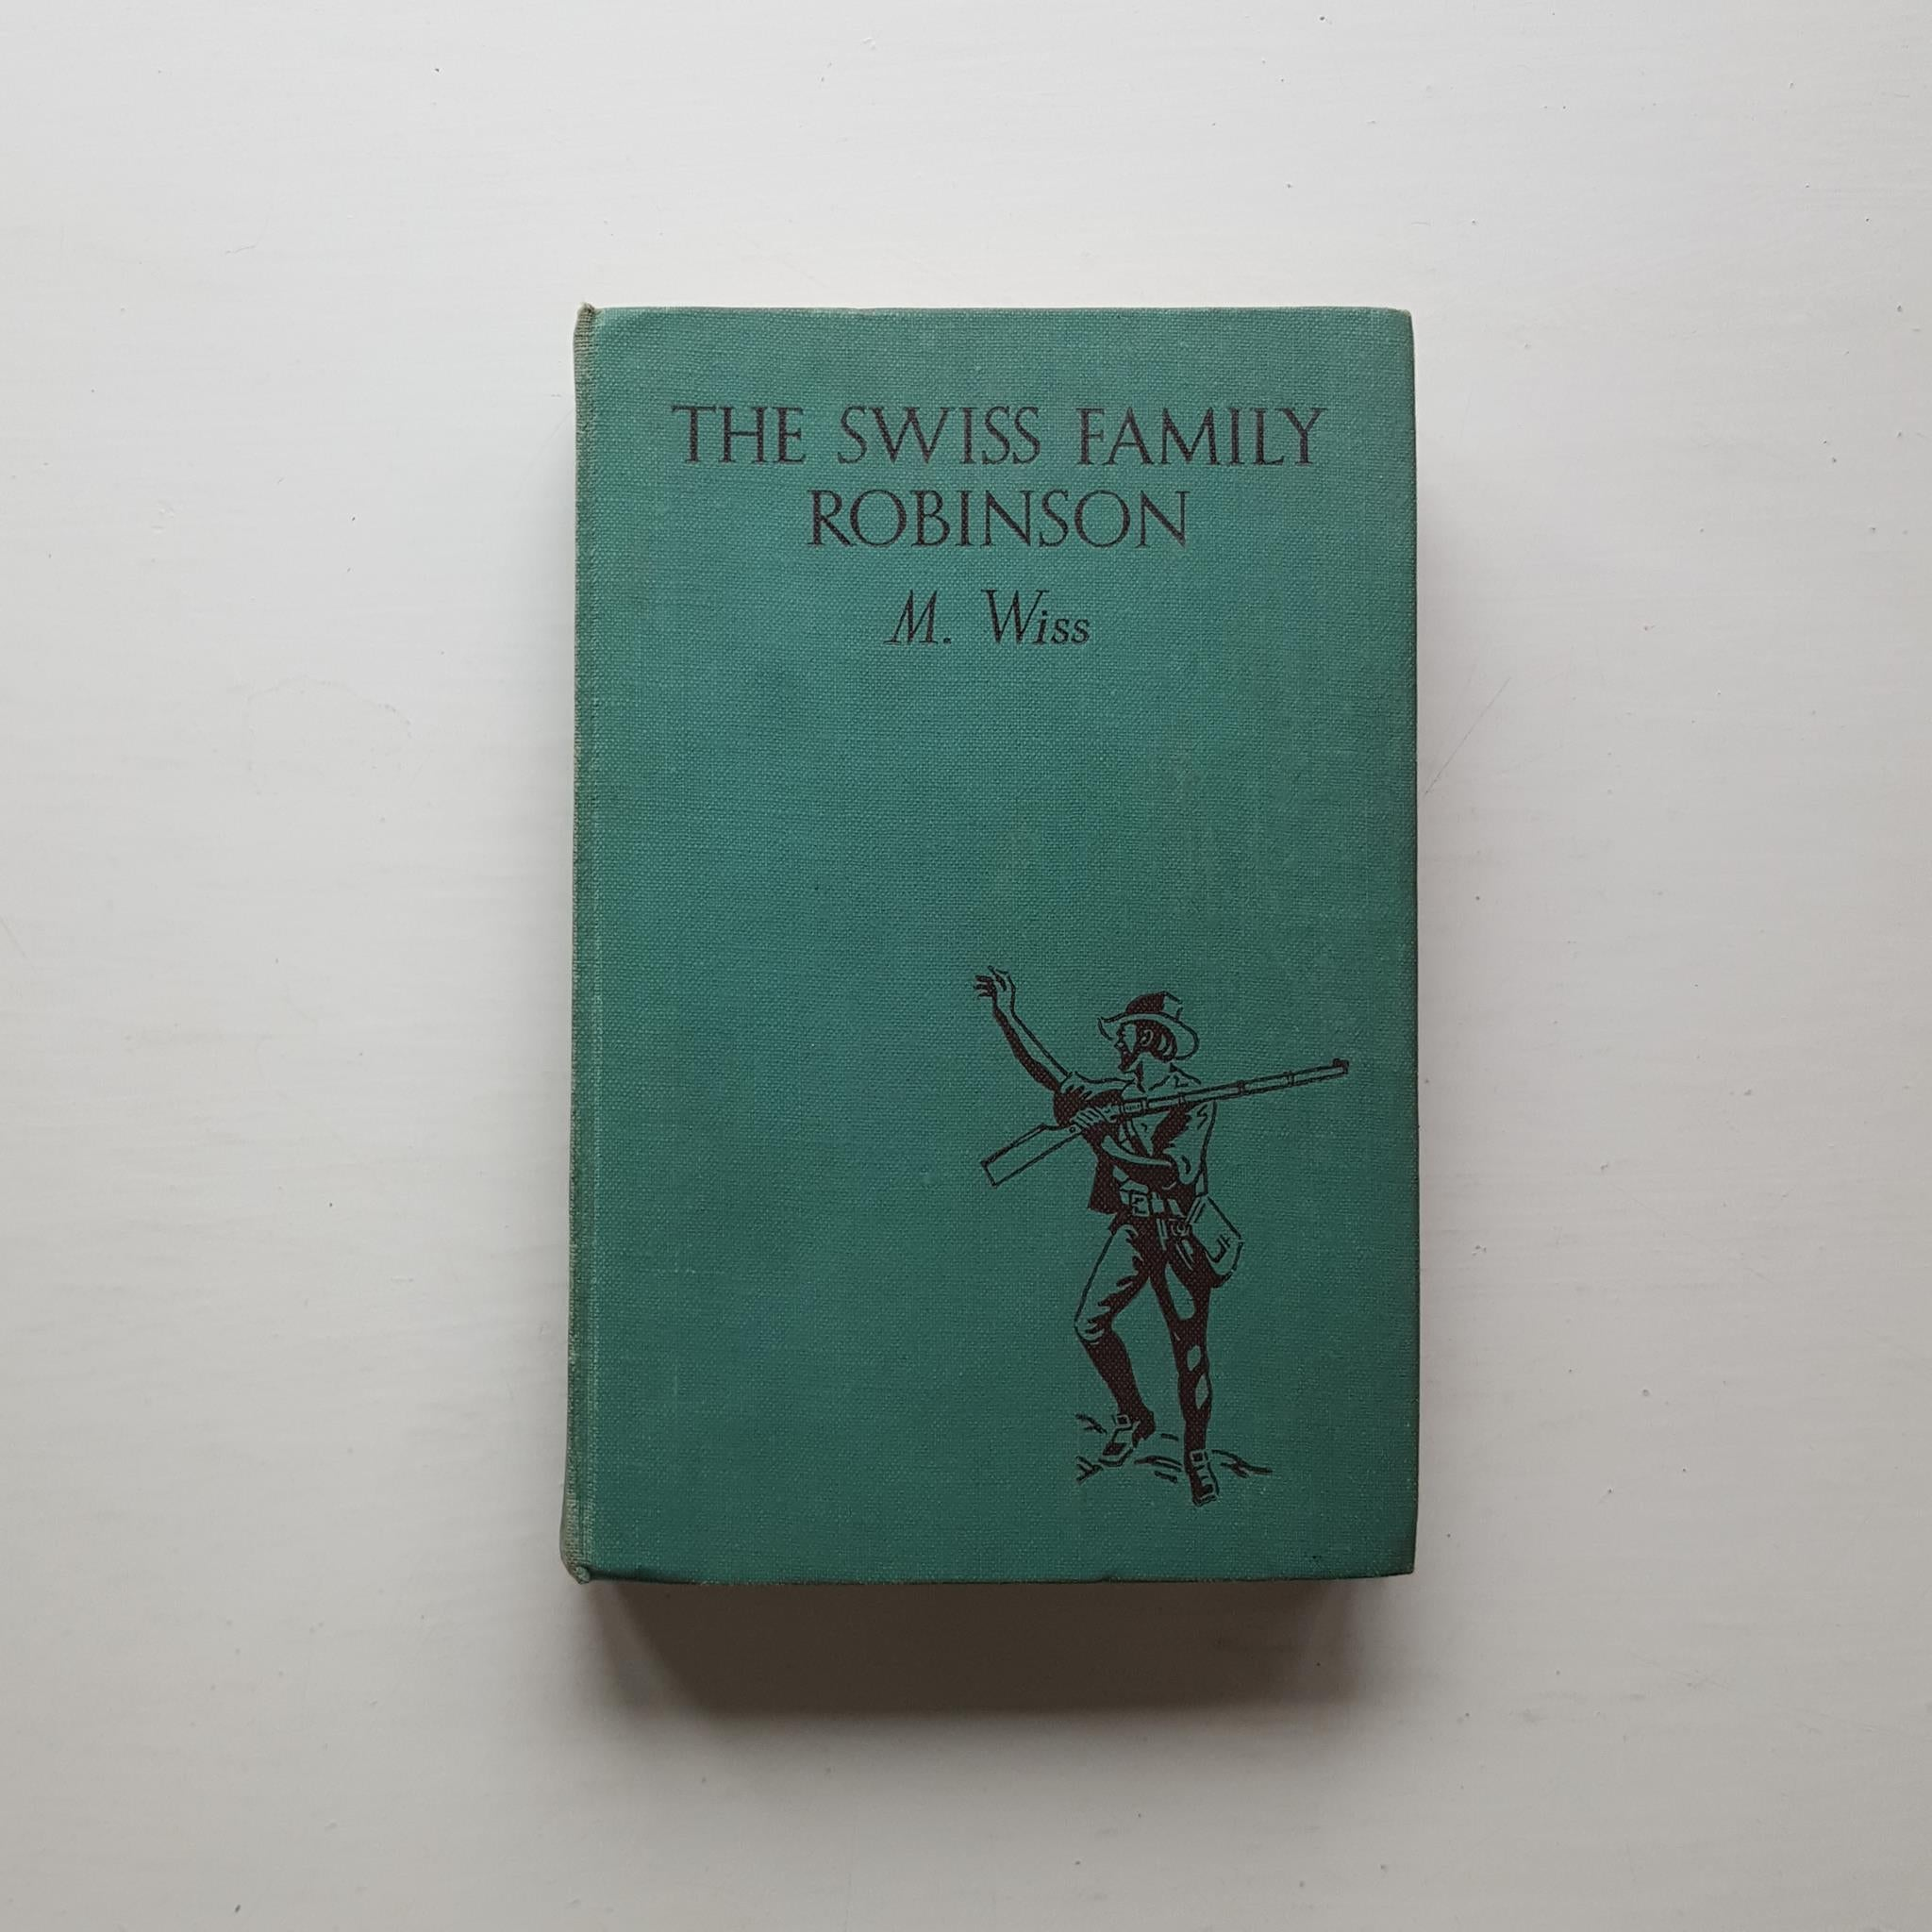 The Swiss Family Robinson by M. Wiss